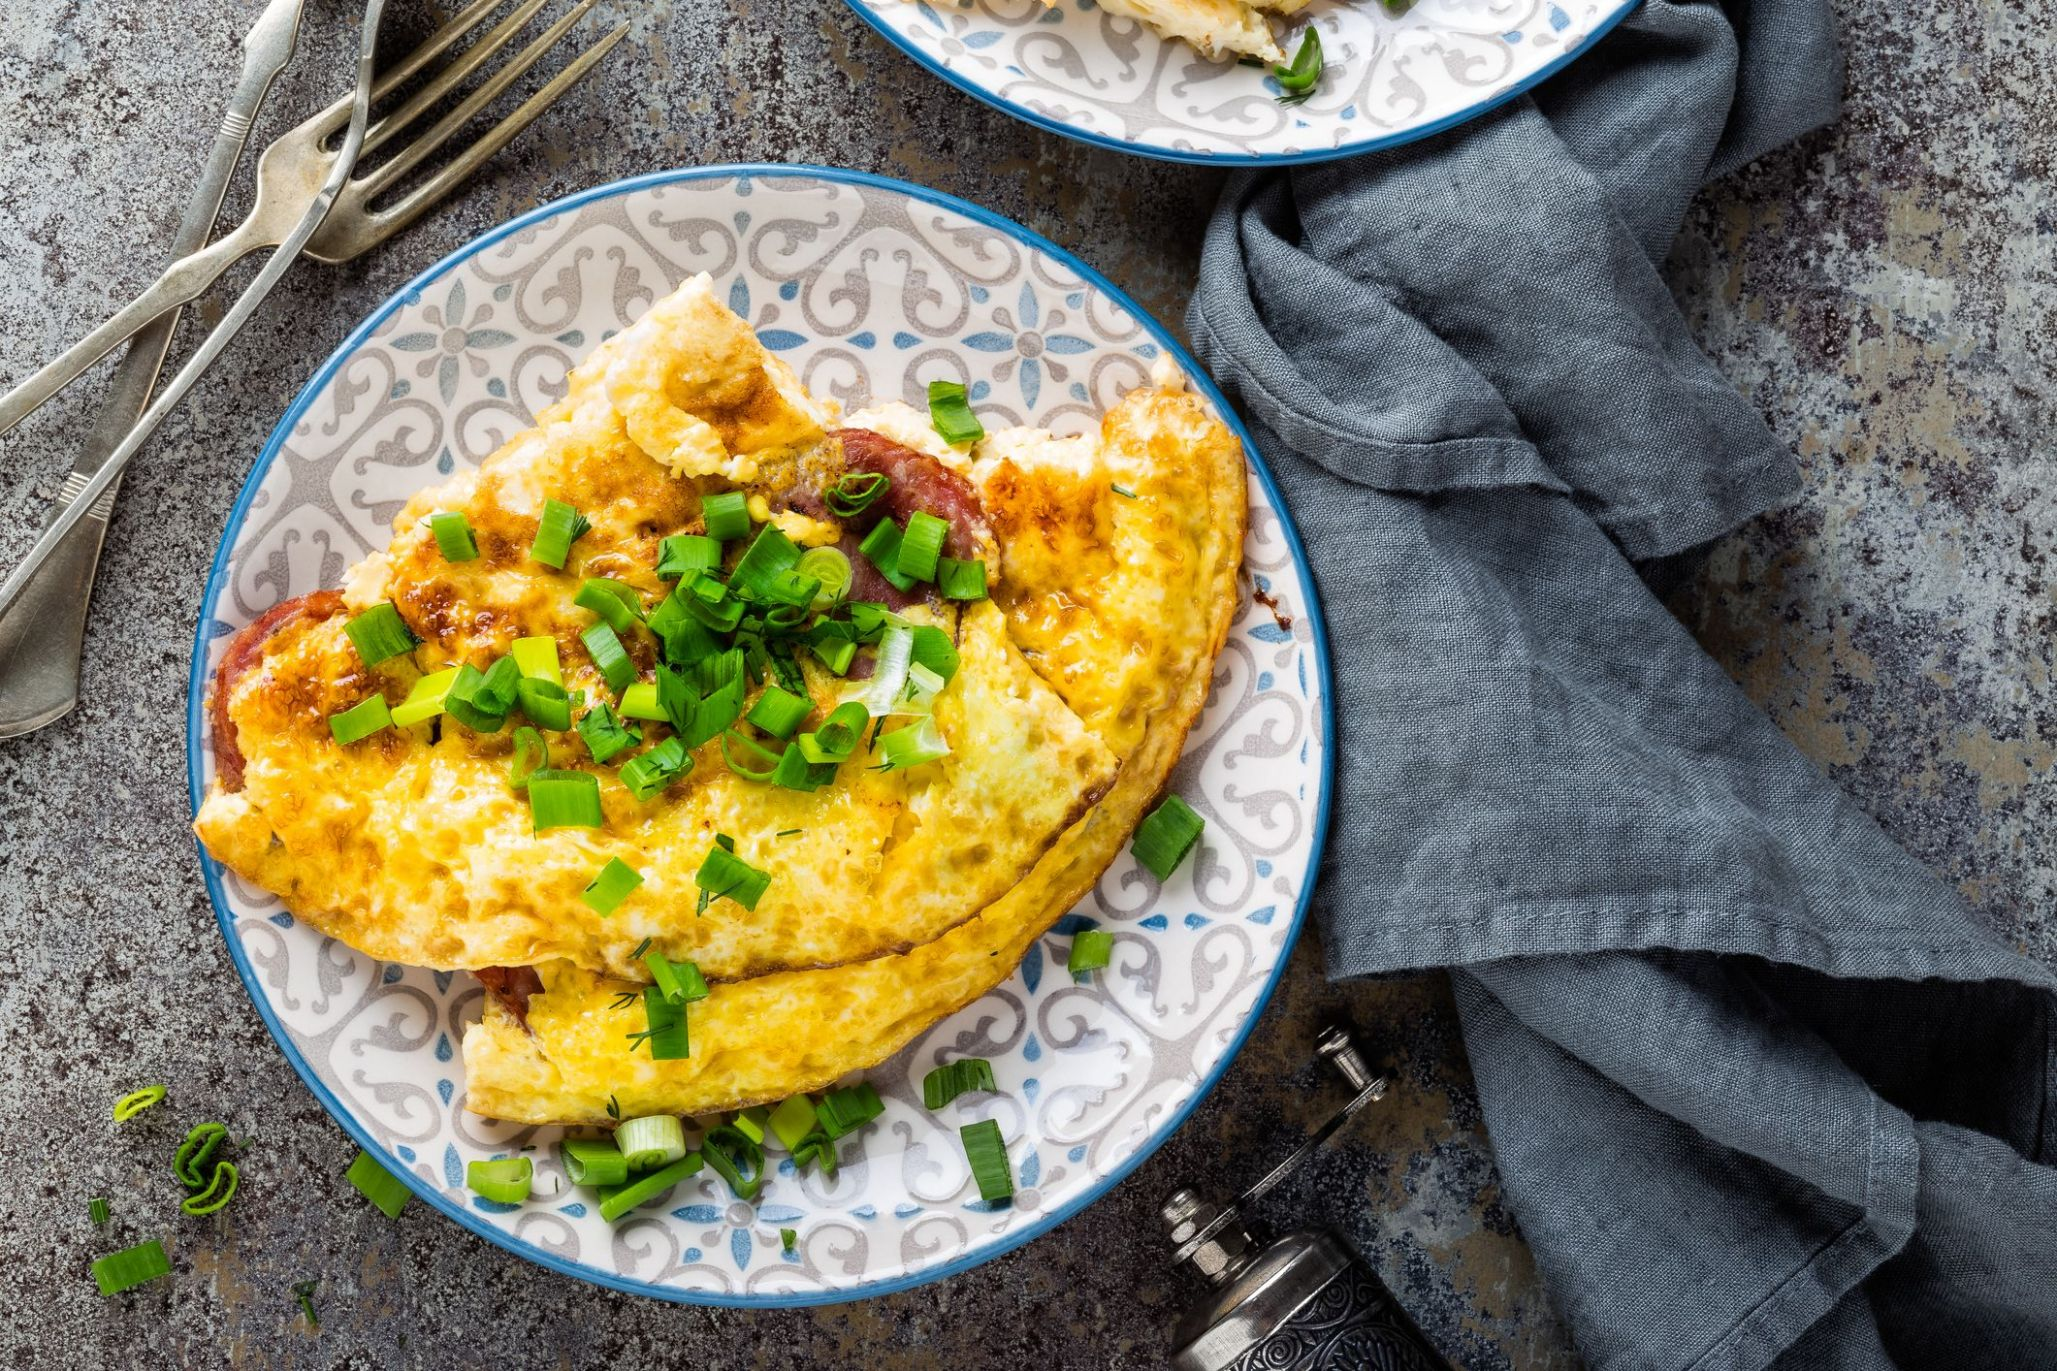 Light breakfast: Omelet with cheese   Light breakfast, Low carb ...